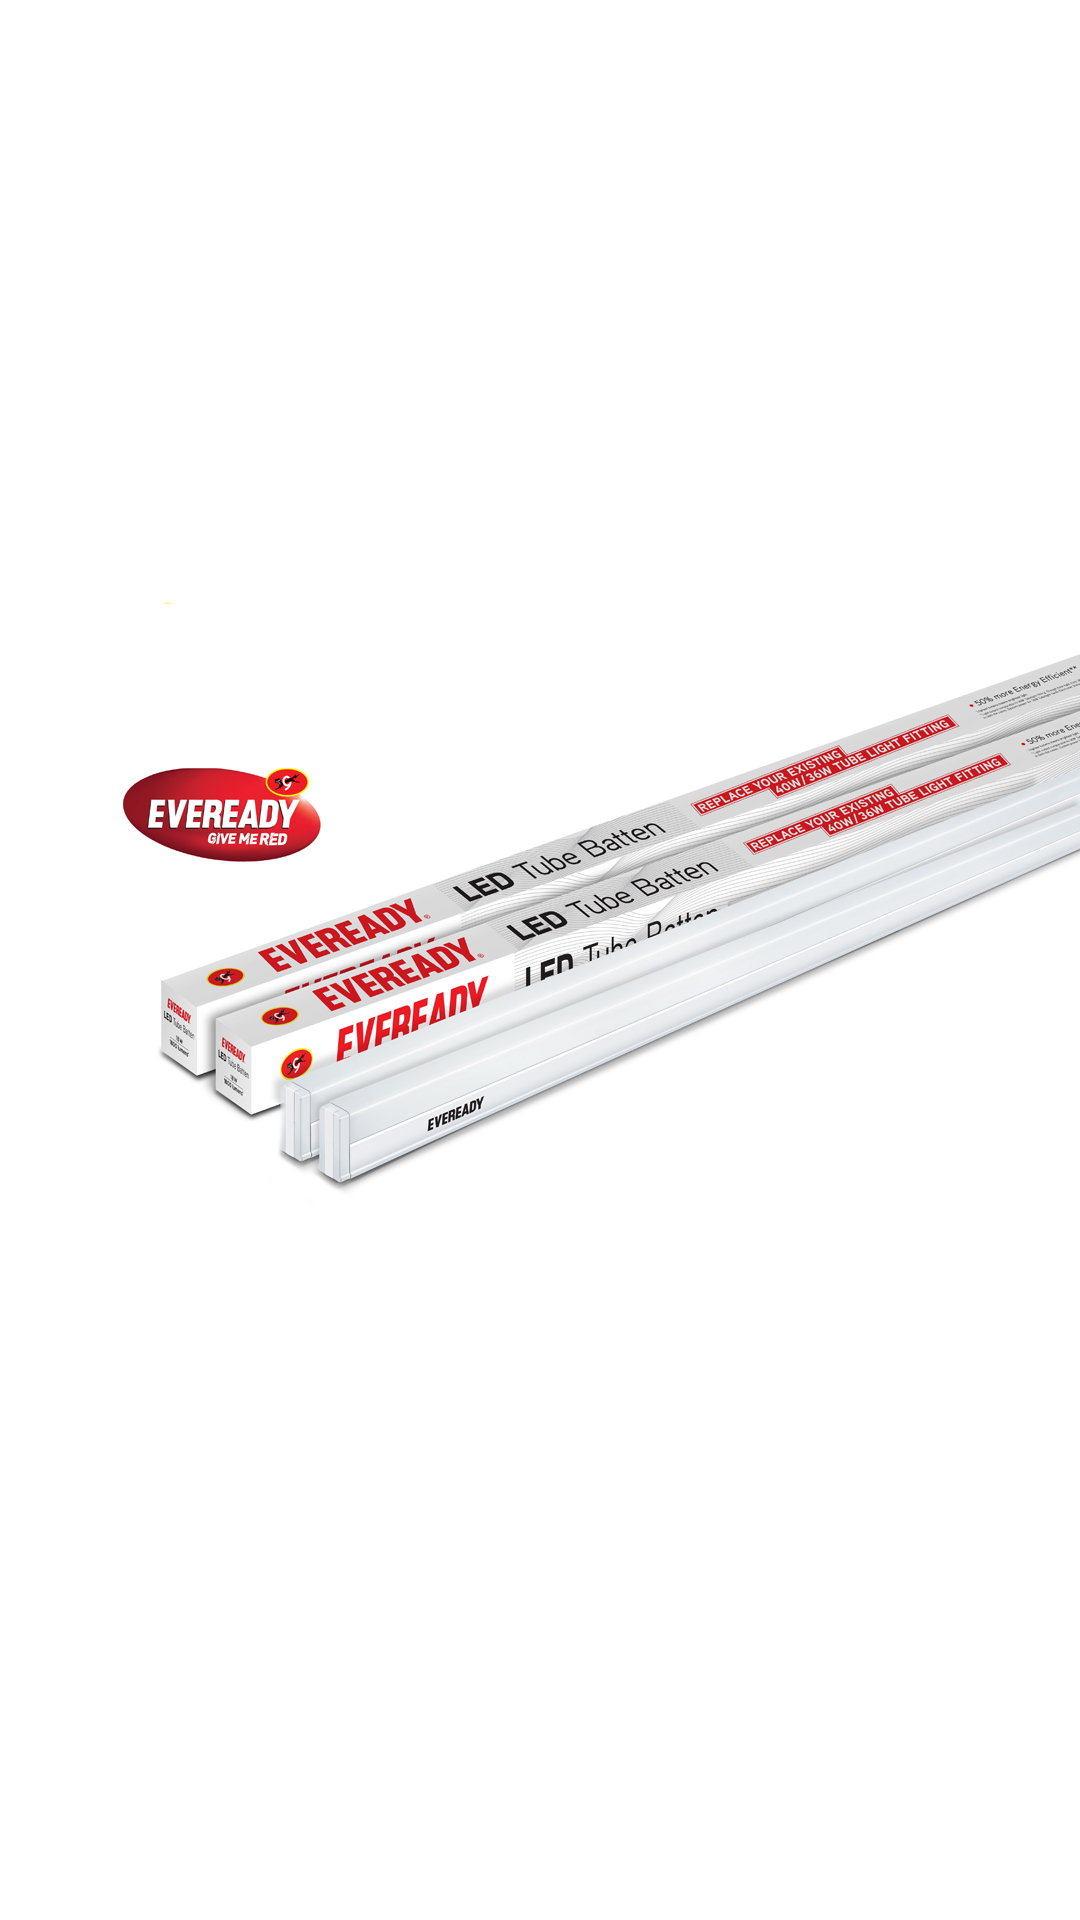 Buy Eveready 18w 4 Feet Led Tube Light Pack Of 2 Online At Low Prices In India